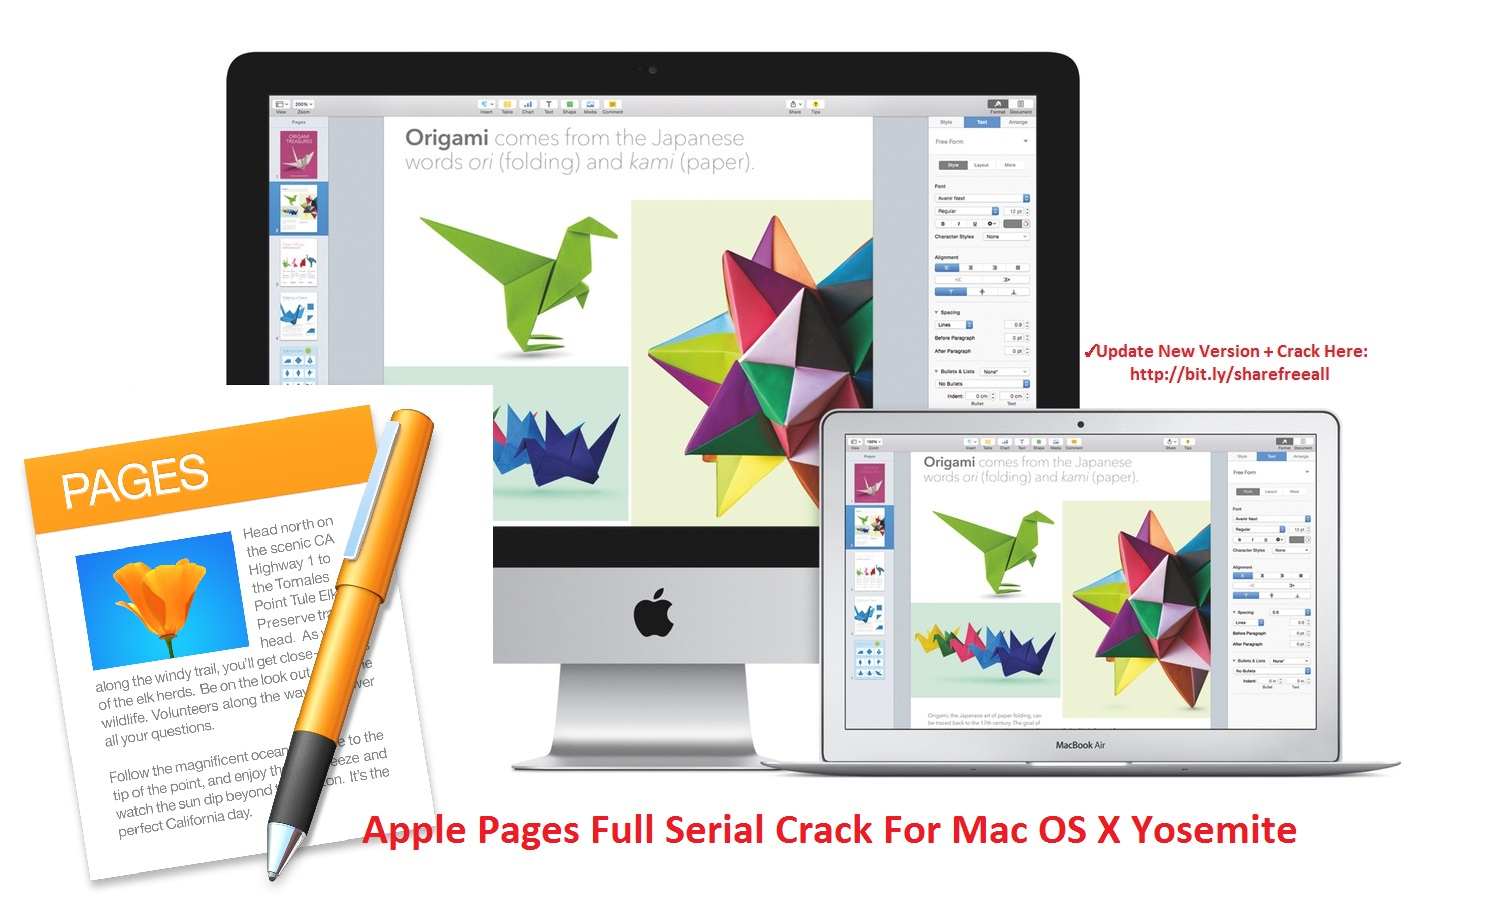 Apple Pages 2015 5.5.3 Serial Crack For Mac OS X